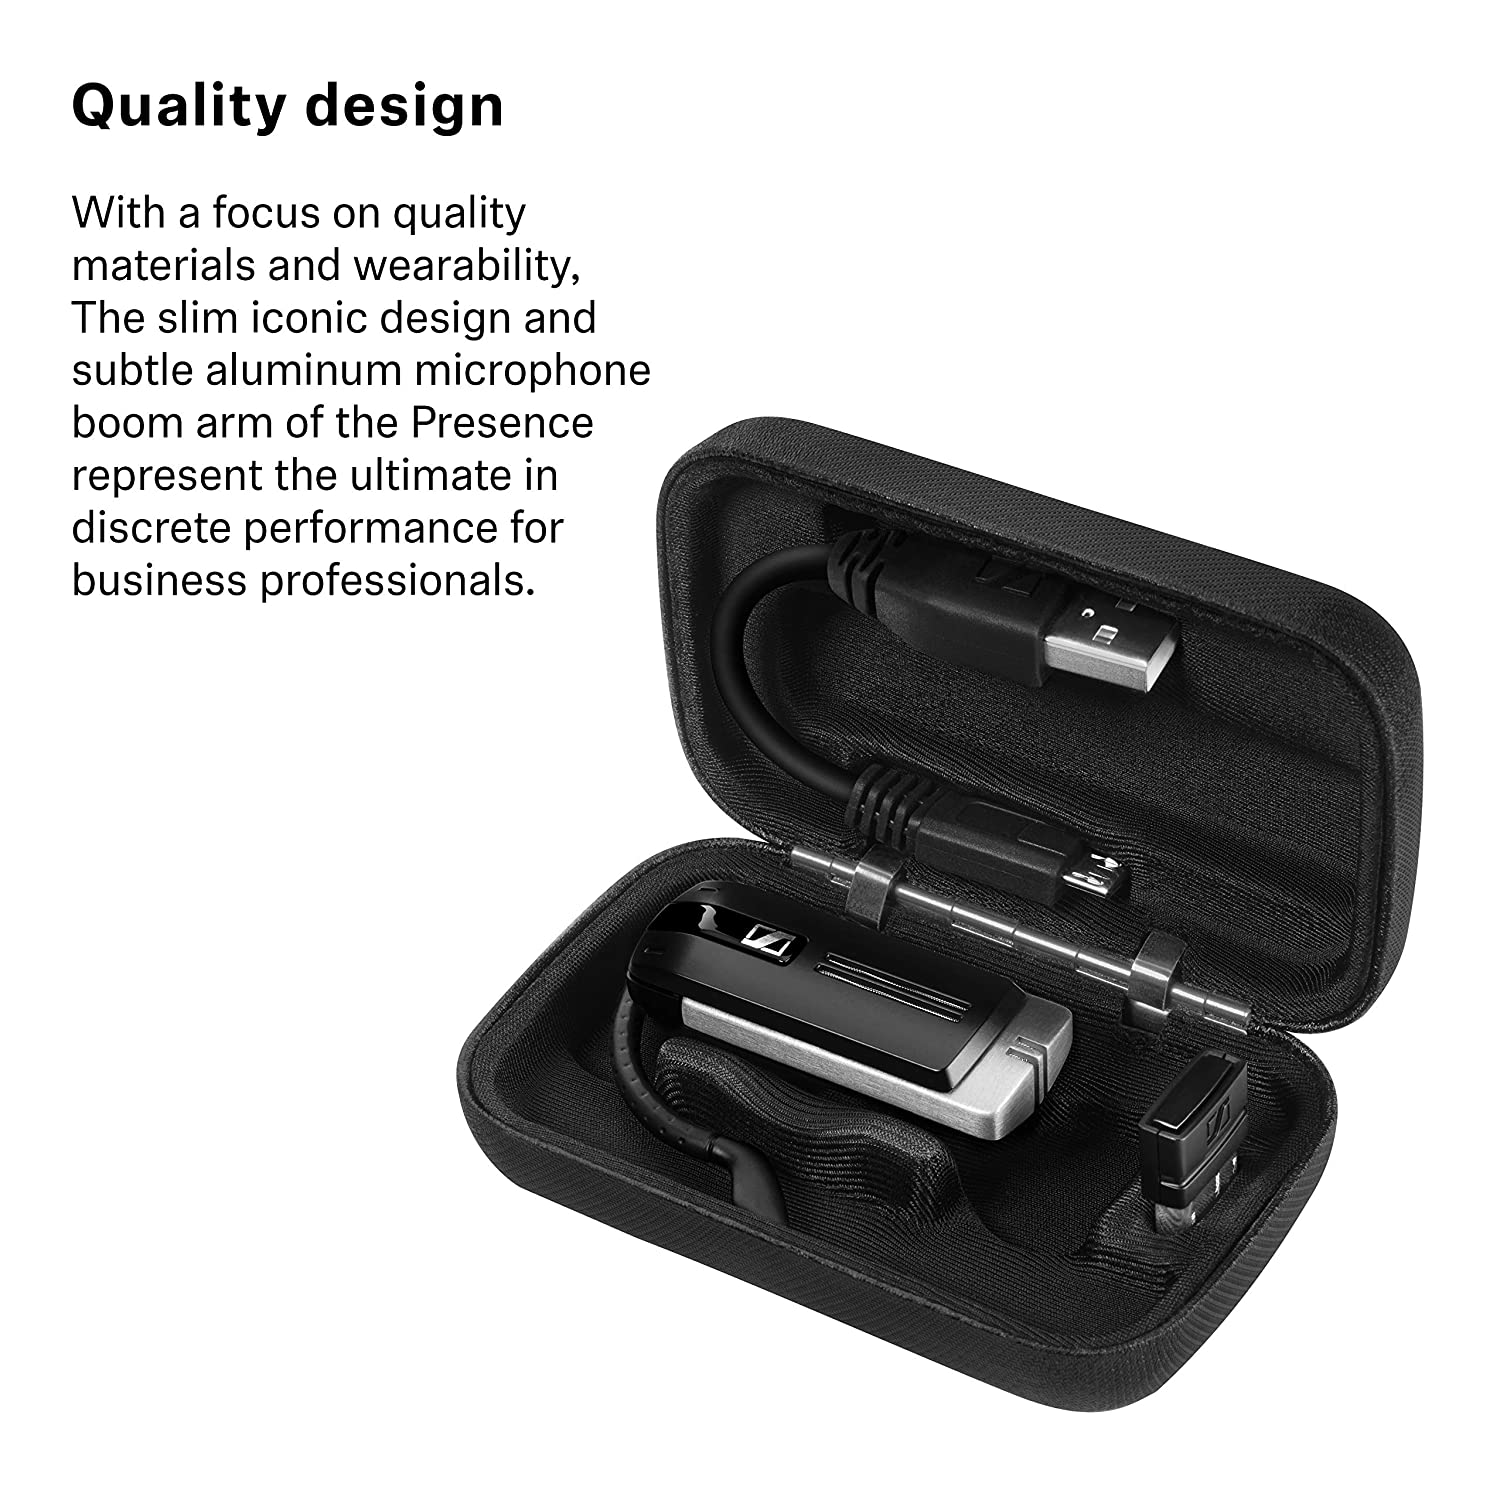 Sennheiser Presence Business - Dual Connectivity 506066 Black Single-Sided Bluetooth Headset for Mobile Device Connection